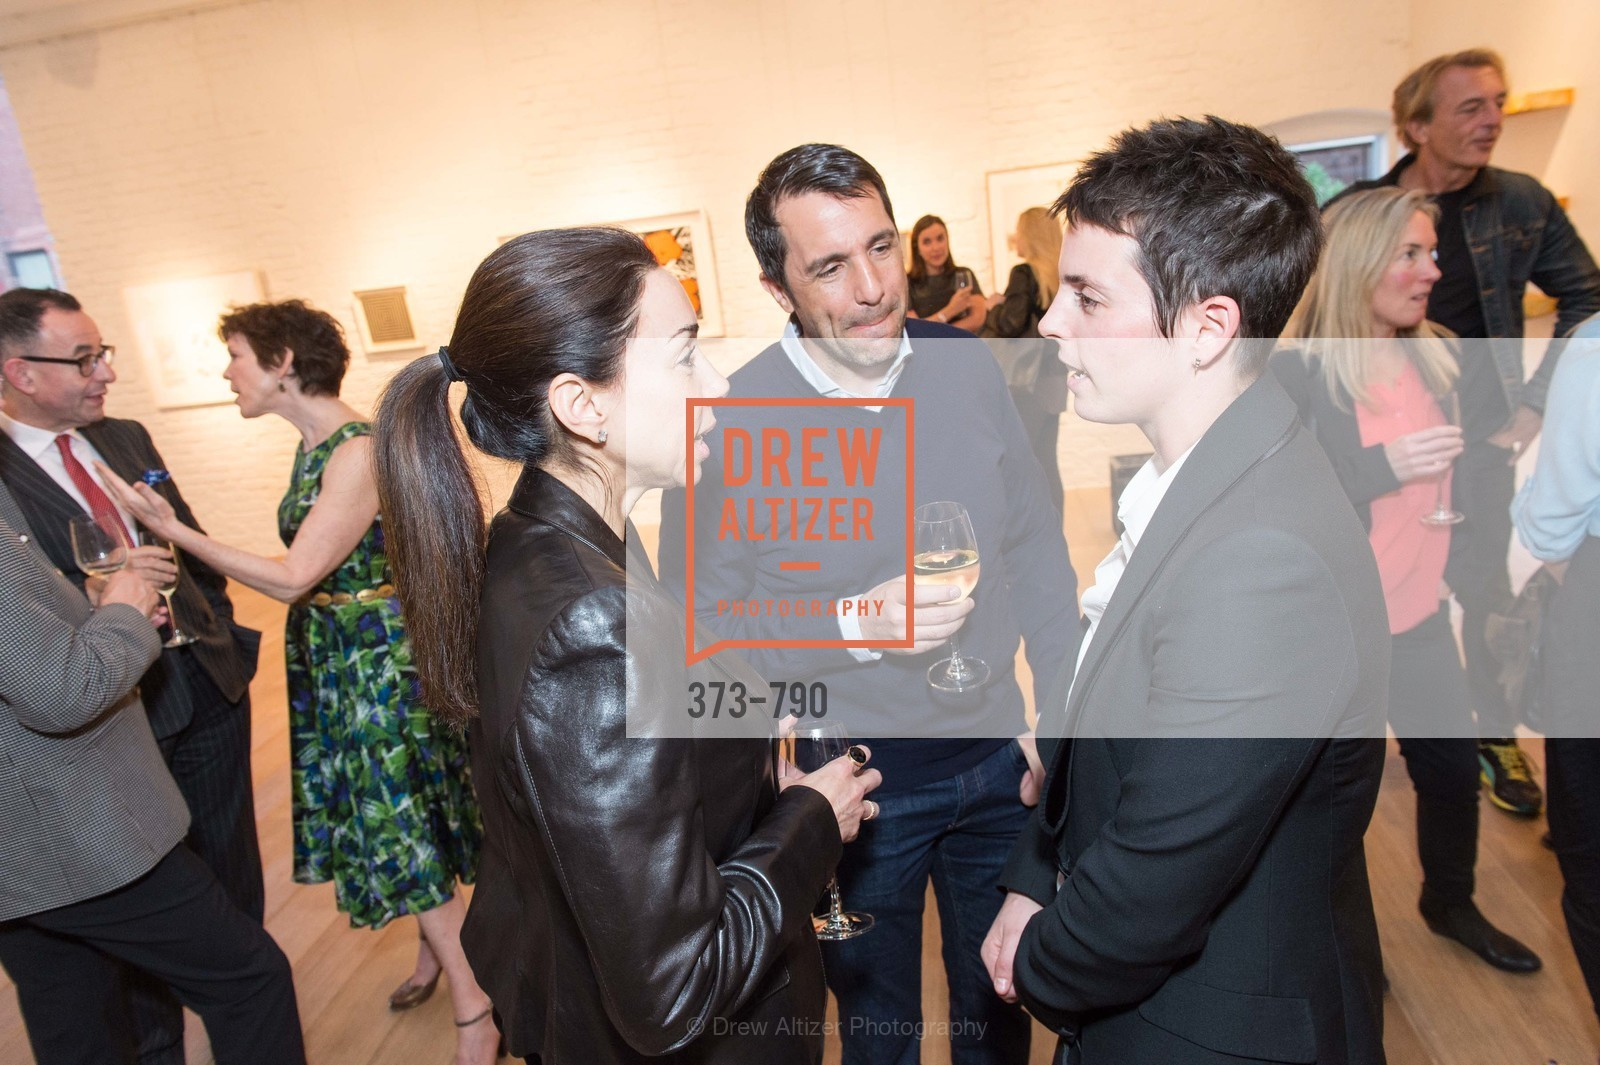 Gina Peterson, Stuart Peterson, Jessica Silverman, Post War and Contemporary Preview at HEDGE GALLERY, US, April 16th, 2015,Drew Altizer, Drew Altizer Photography, full-service agency, private events, San Francisco photographer, photographer california